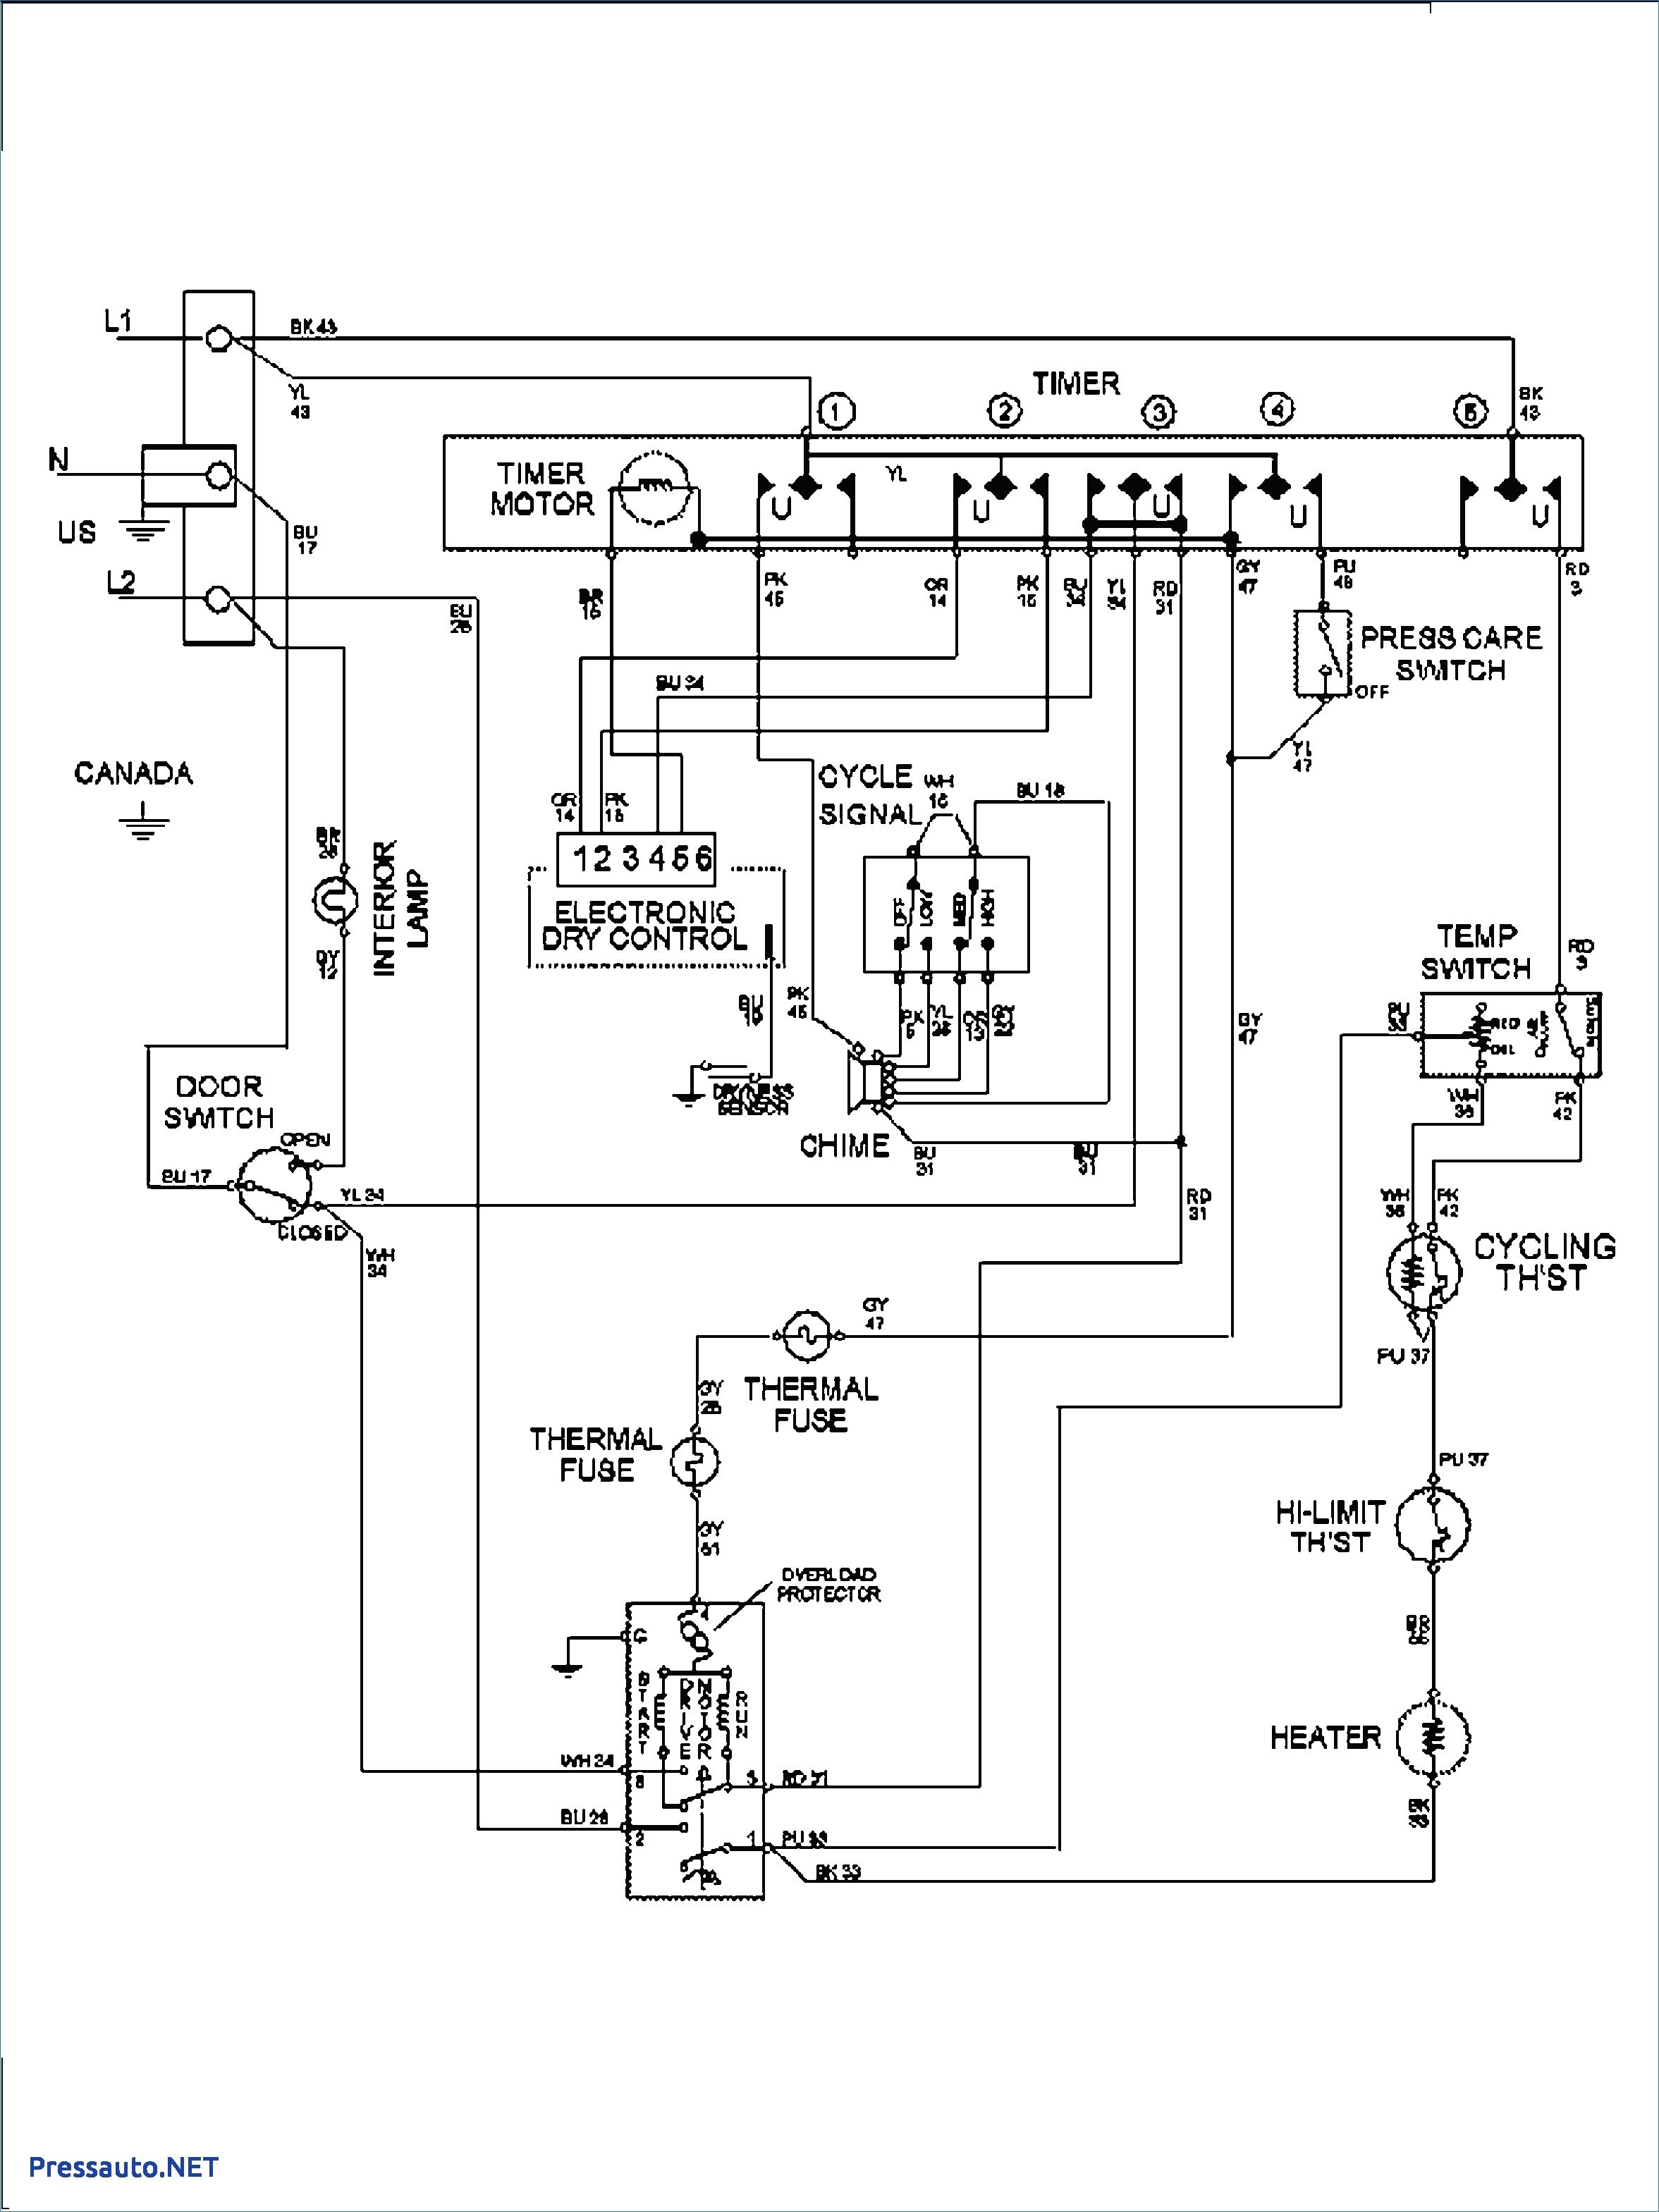 220v dryer schematic wiring dryer schematic maytag dryer wiring schematic | free wiring diagram